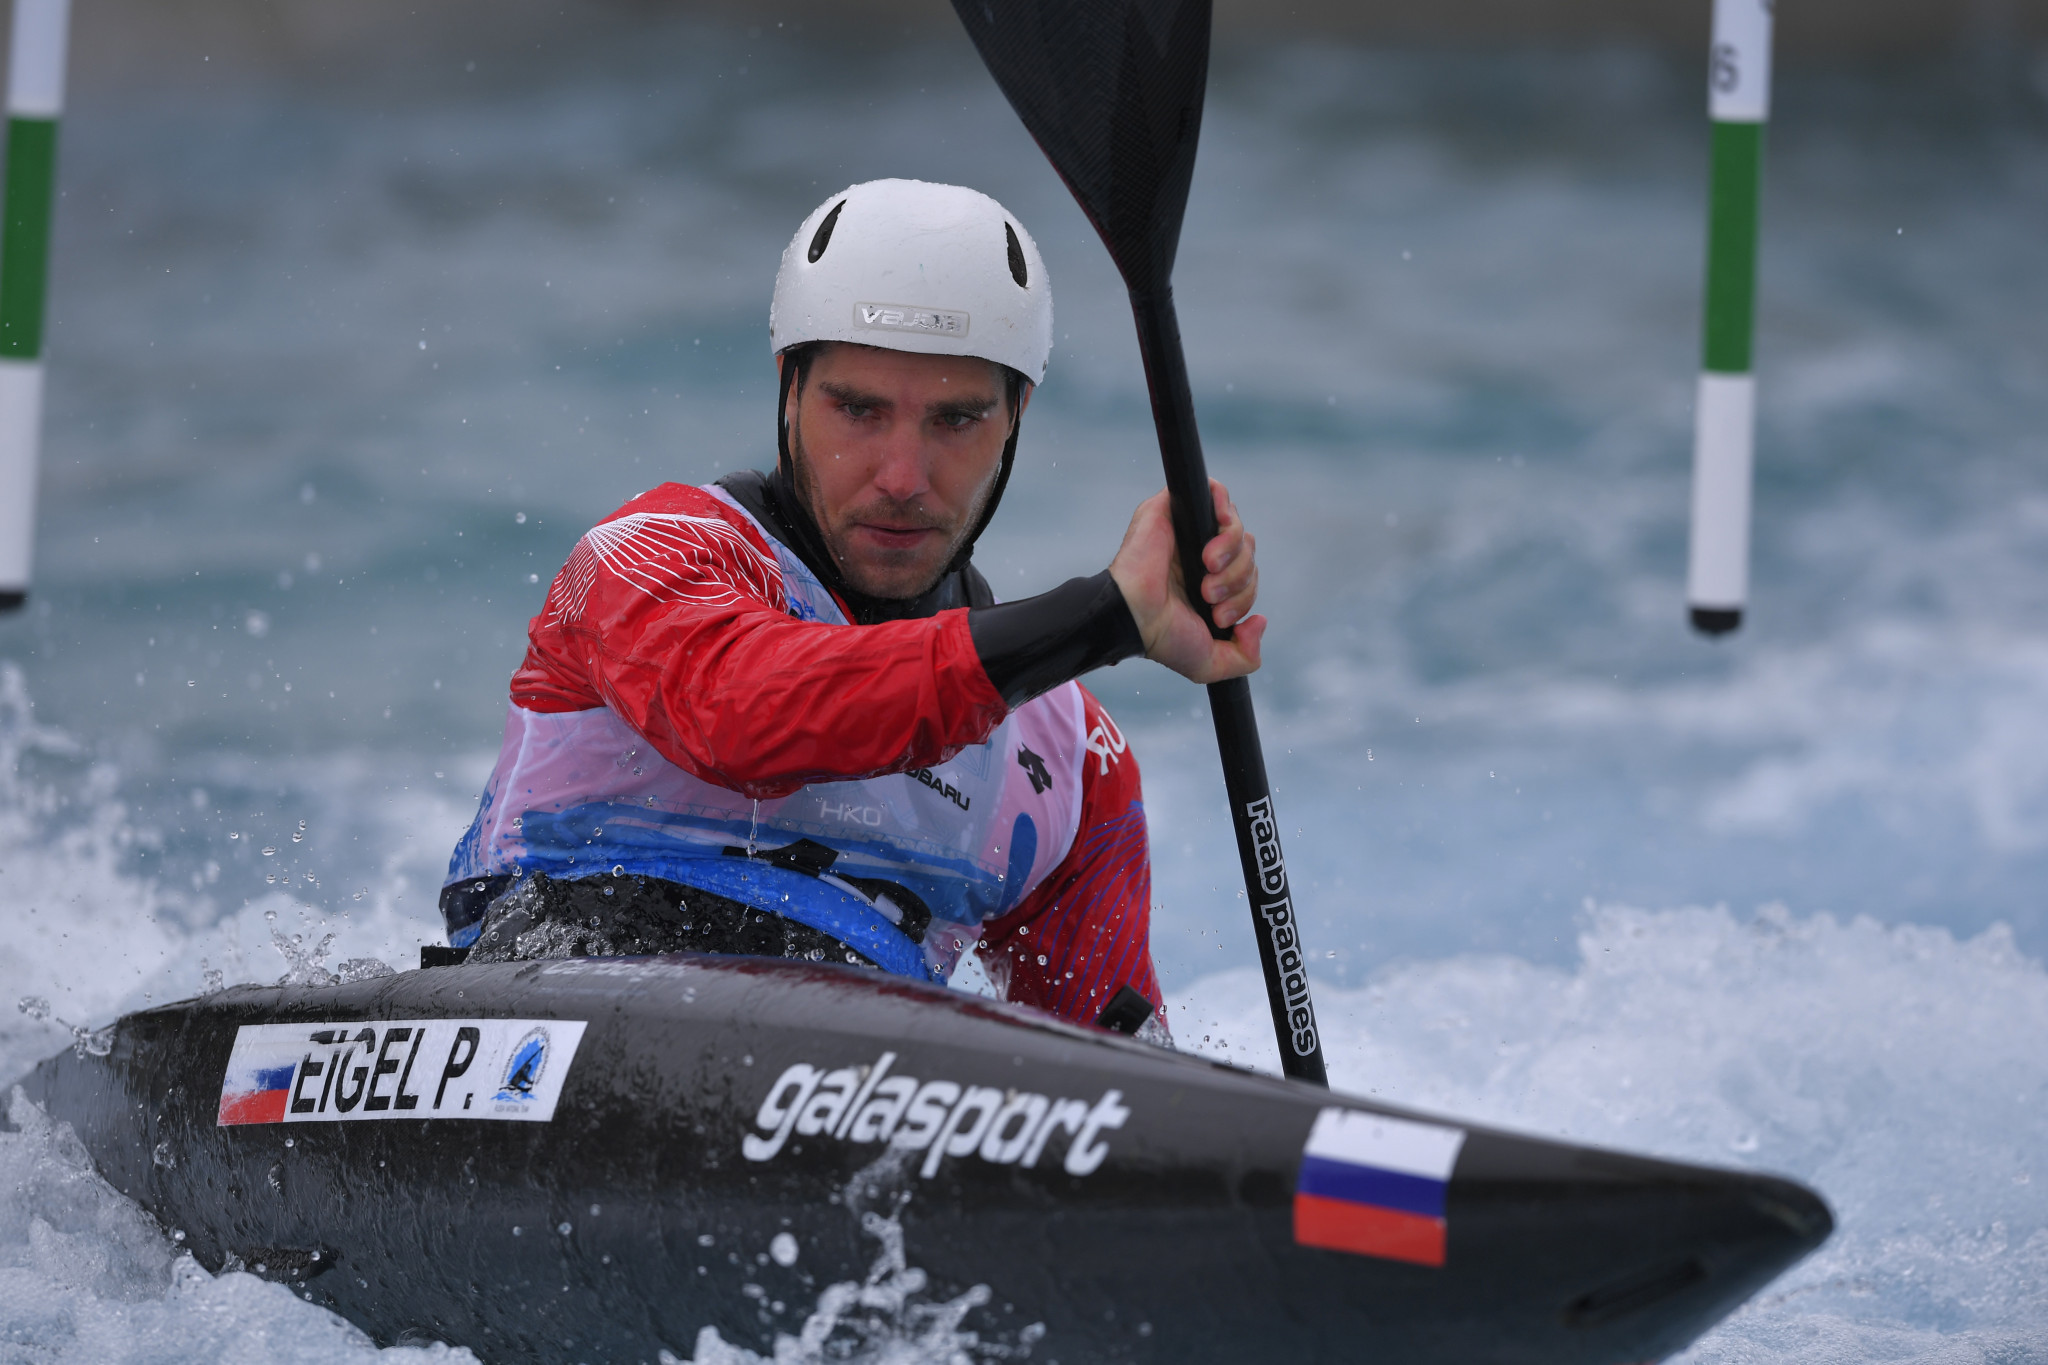 Eigel qualifies fastest in men's K1 at Tokyo 2020 canoe slalom test event